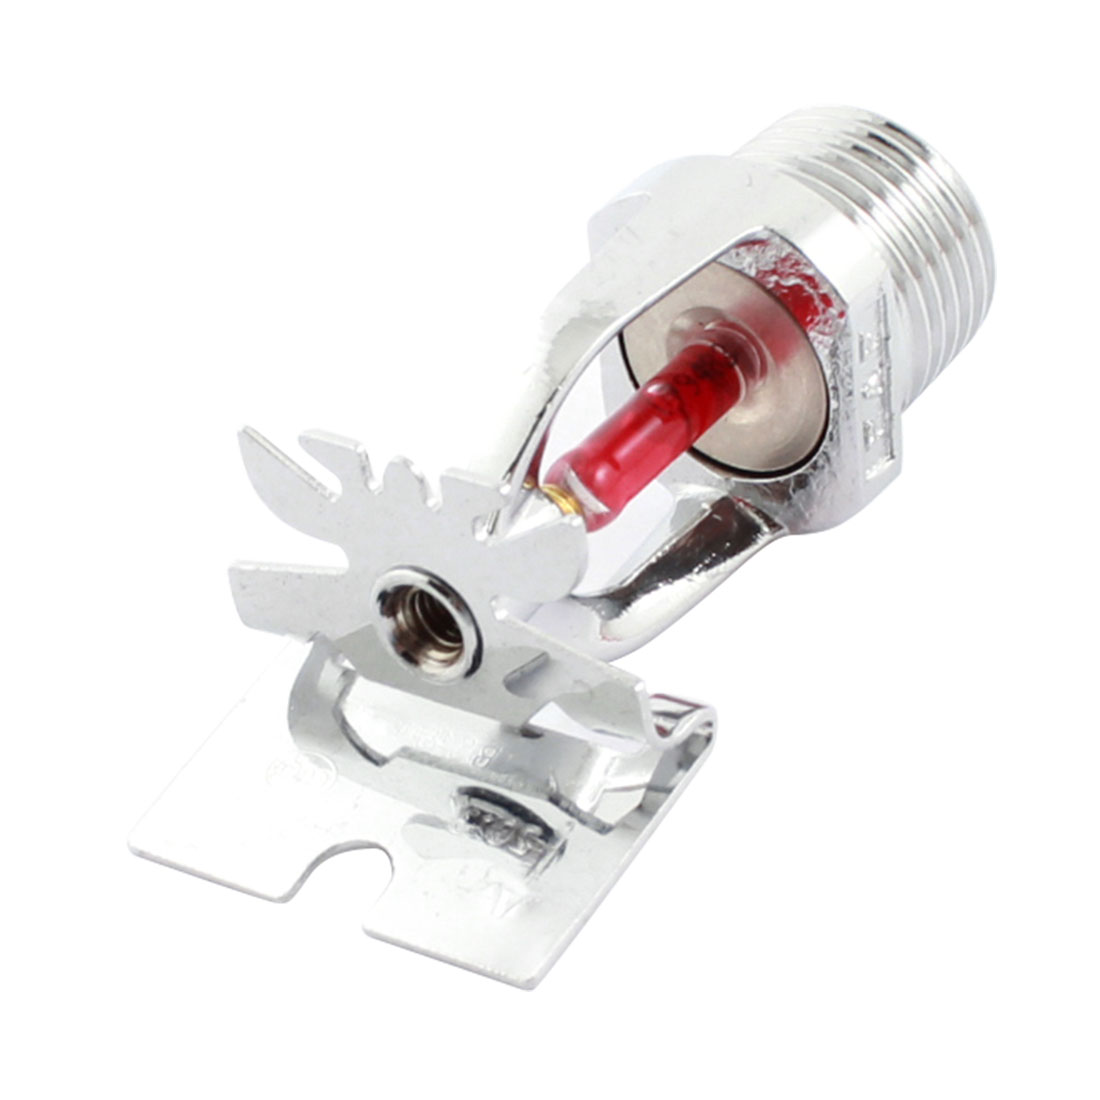 Security Protection 1/2 PT Male Threaded Water Sprayer Fire Sprinkler Head